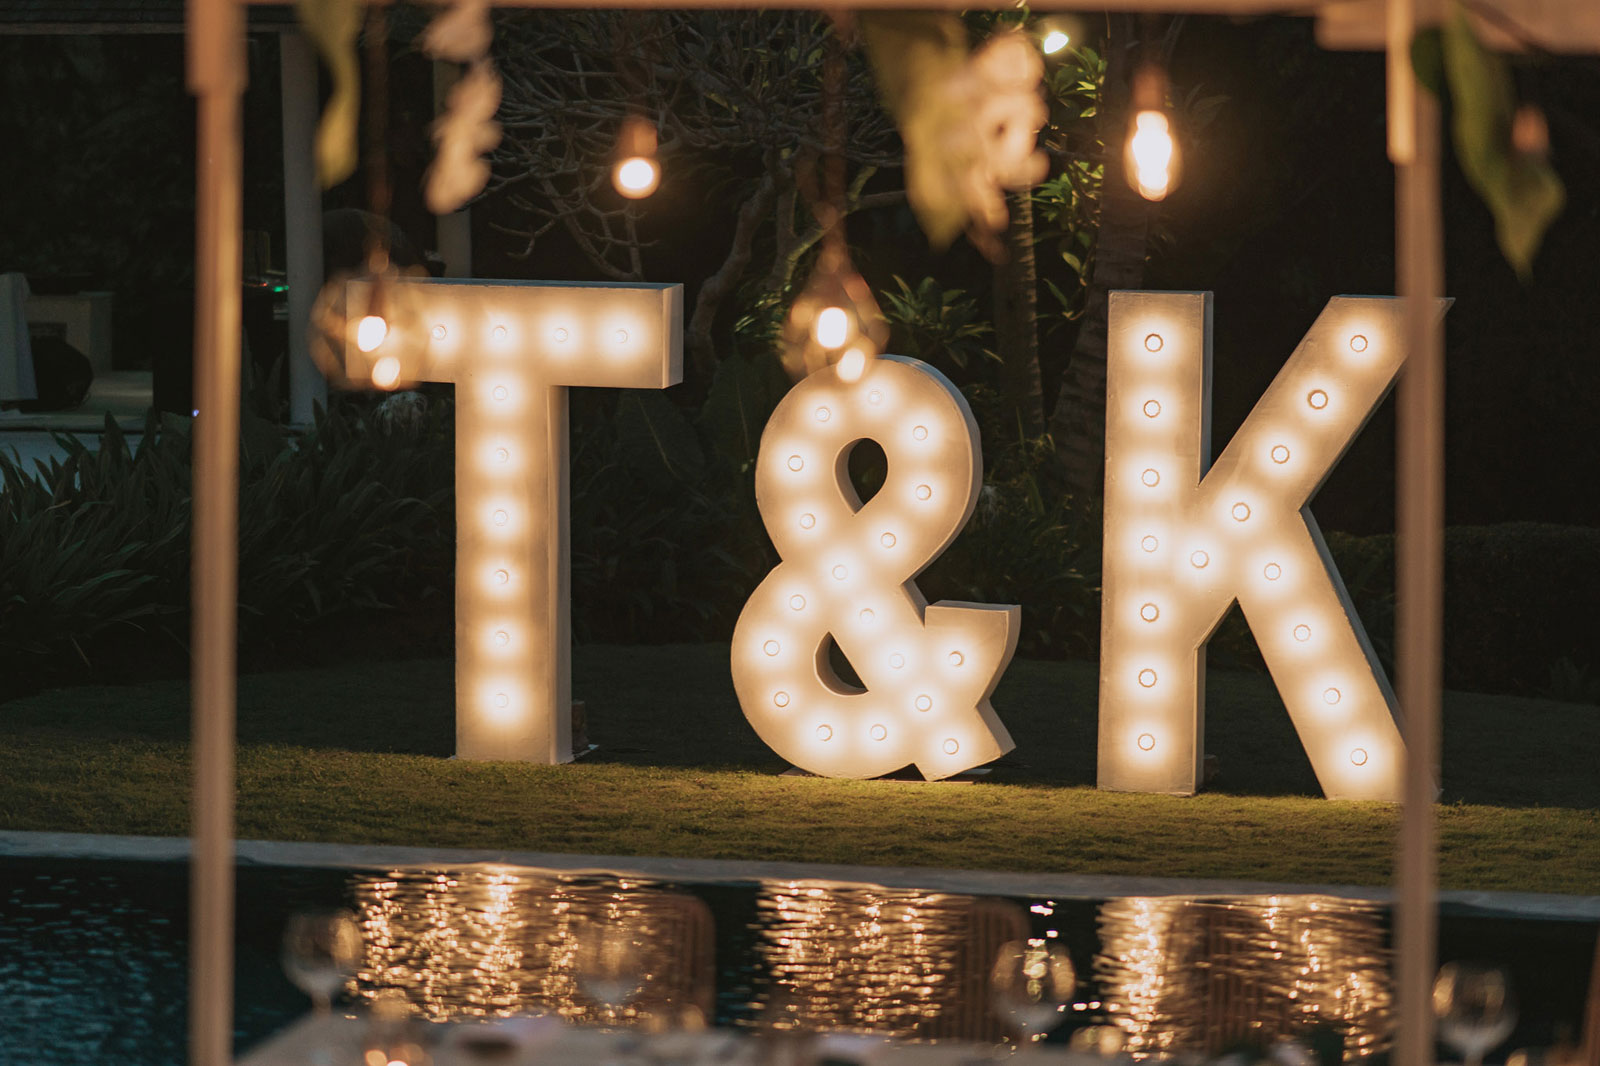 newfound-t-k-canggu-bali-ubud-wedding-photographer-765